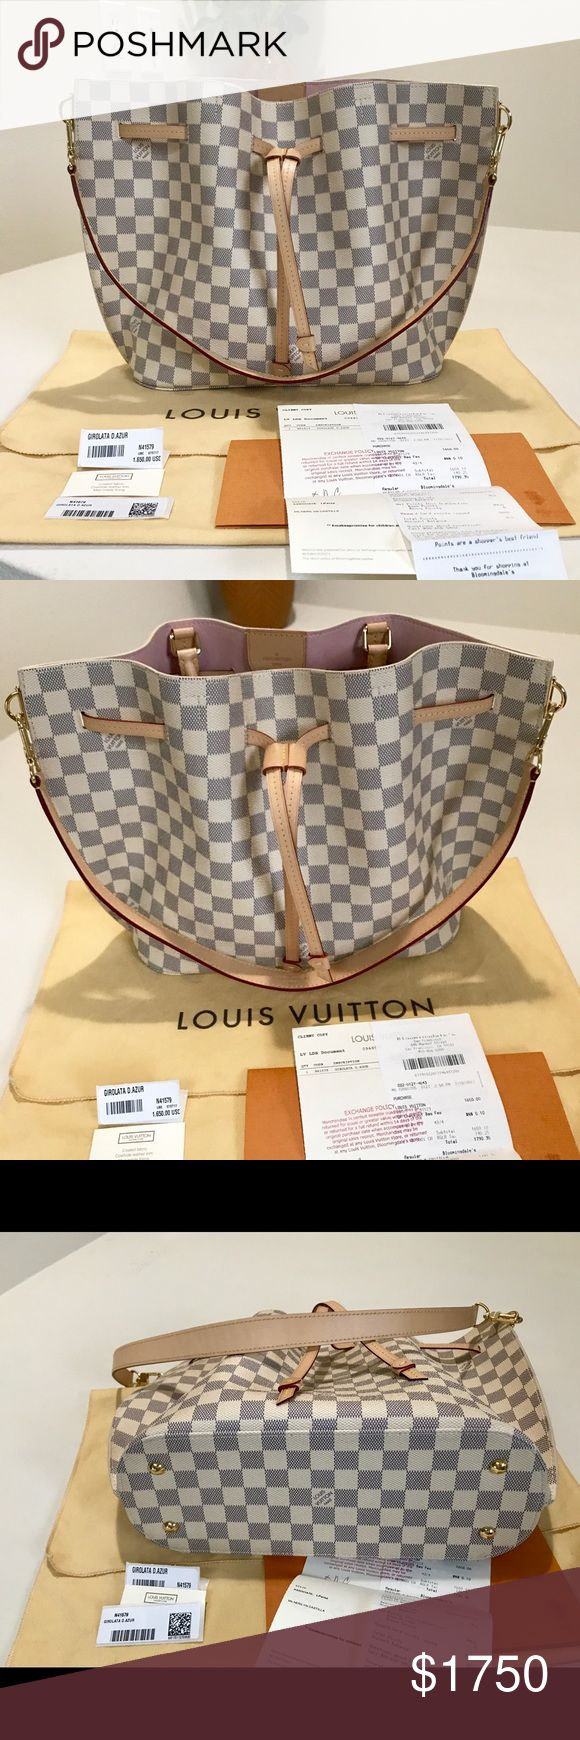 """Louis Vuitton Girolata Damier Azur coated canvas Louis Vuitton Girolata bag with brass hardware, tan vachetta leather trim, dual rolled top handles, pink Alcantara lining, dual pockets at interior wall; one with zip closure and drawstring closure at front.  Date code reads GI 0127.  Handle Drop: 5.5"""" Height: 10.75"""" Width: 17"""" Depth: 5"""" Includes dust bag, tags and receipt.  Paid close to $1800 w/tax. Price FIRM. Louis Vuitton Bags"""